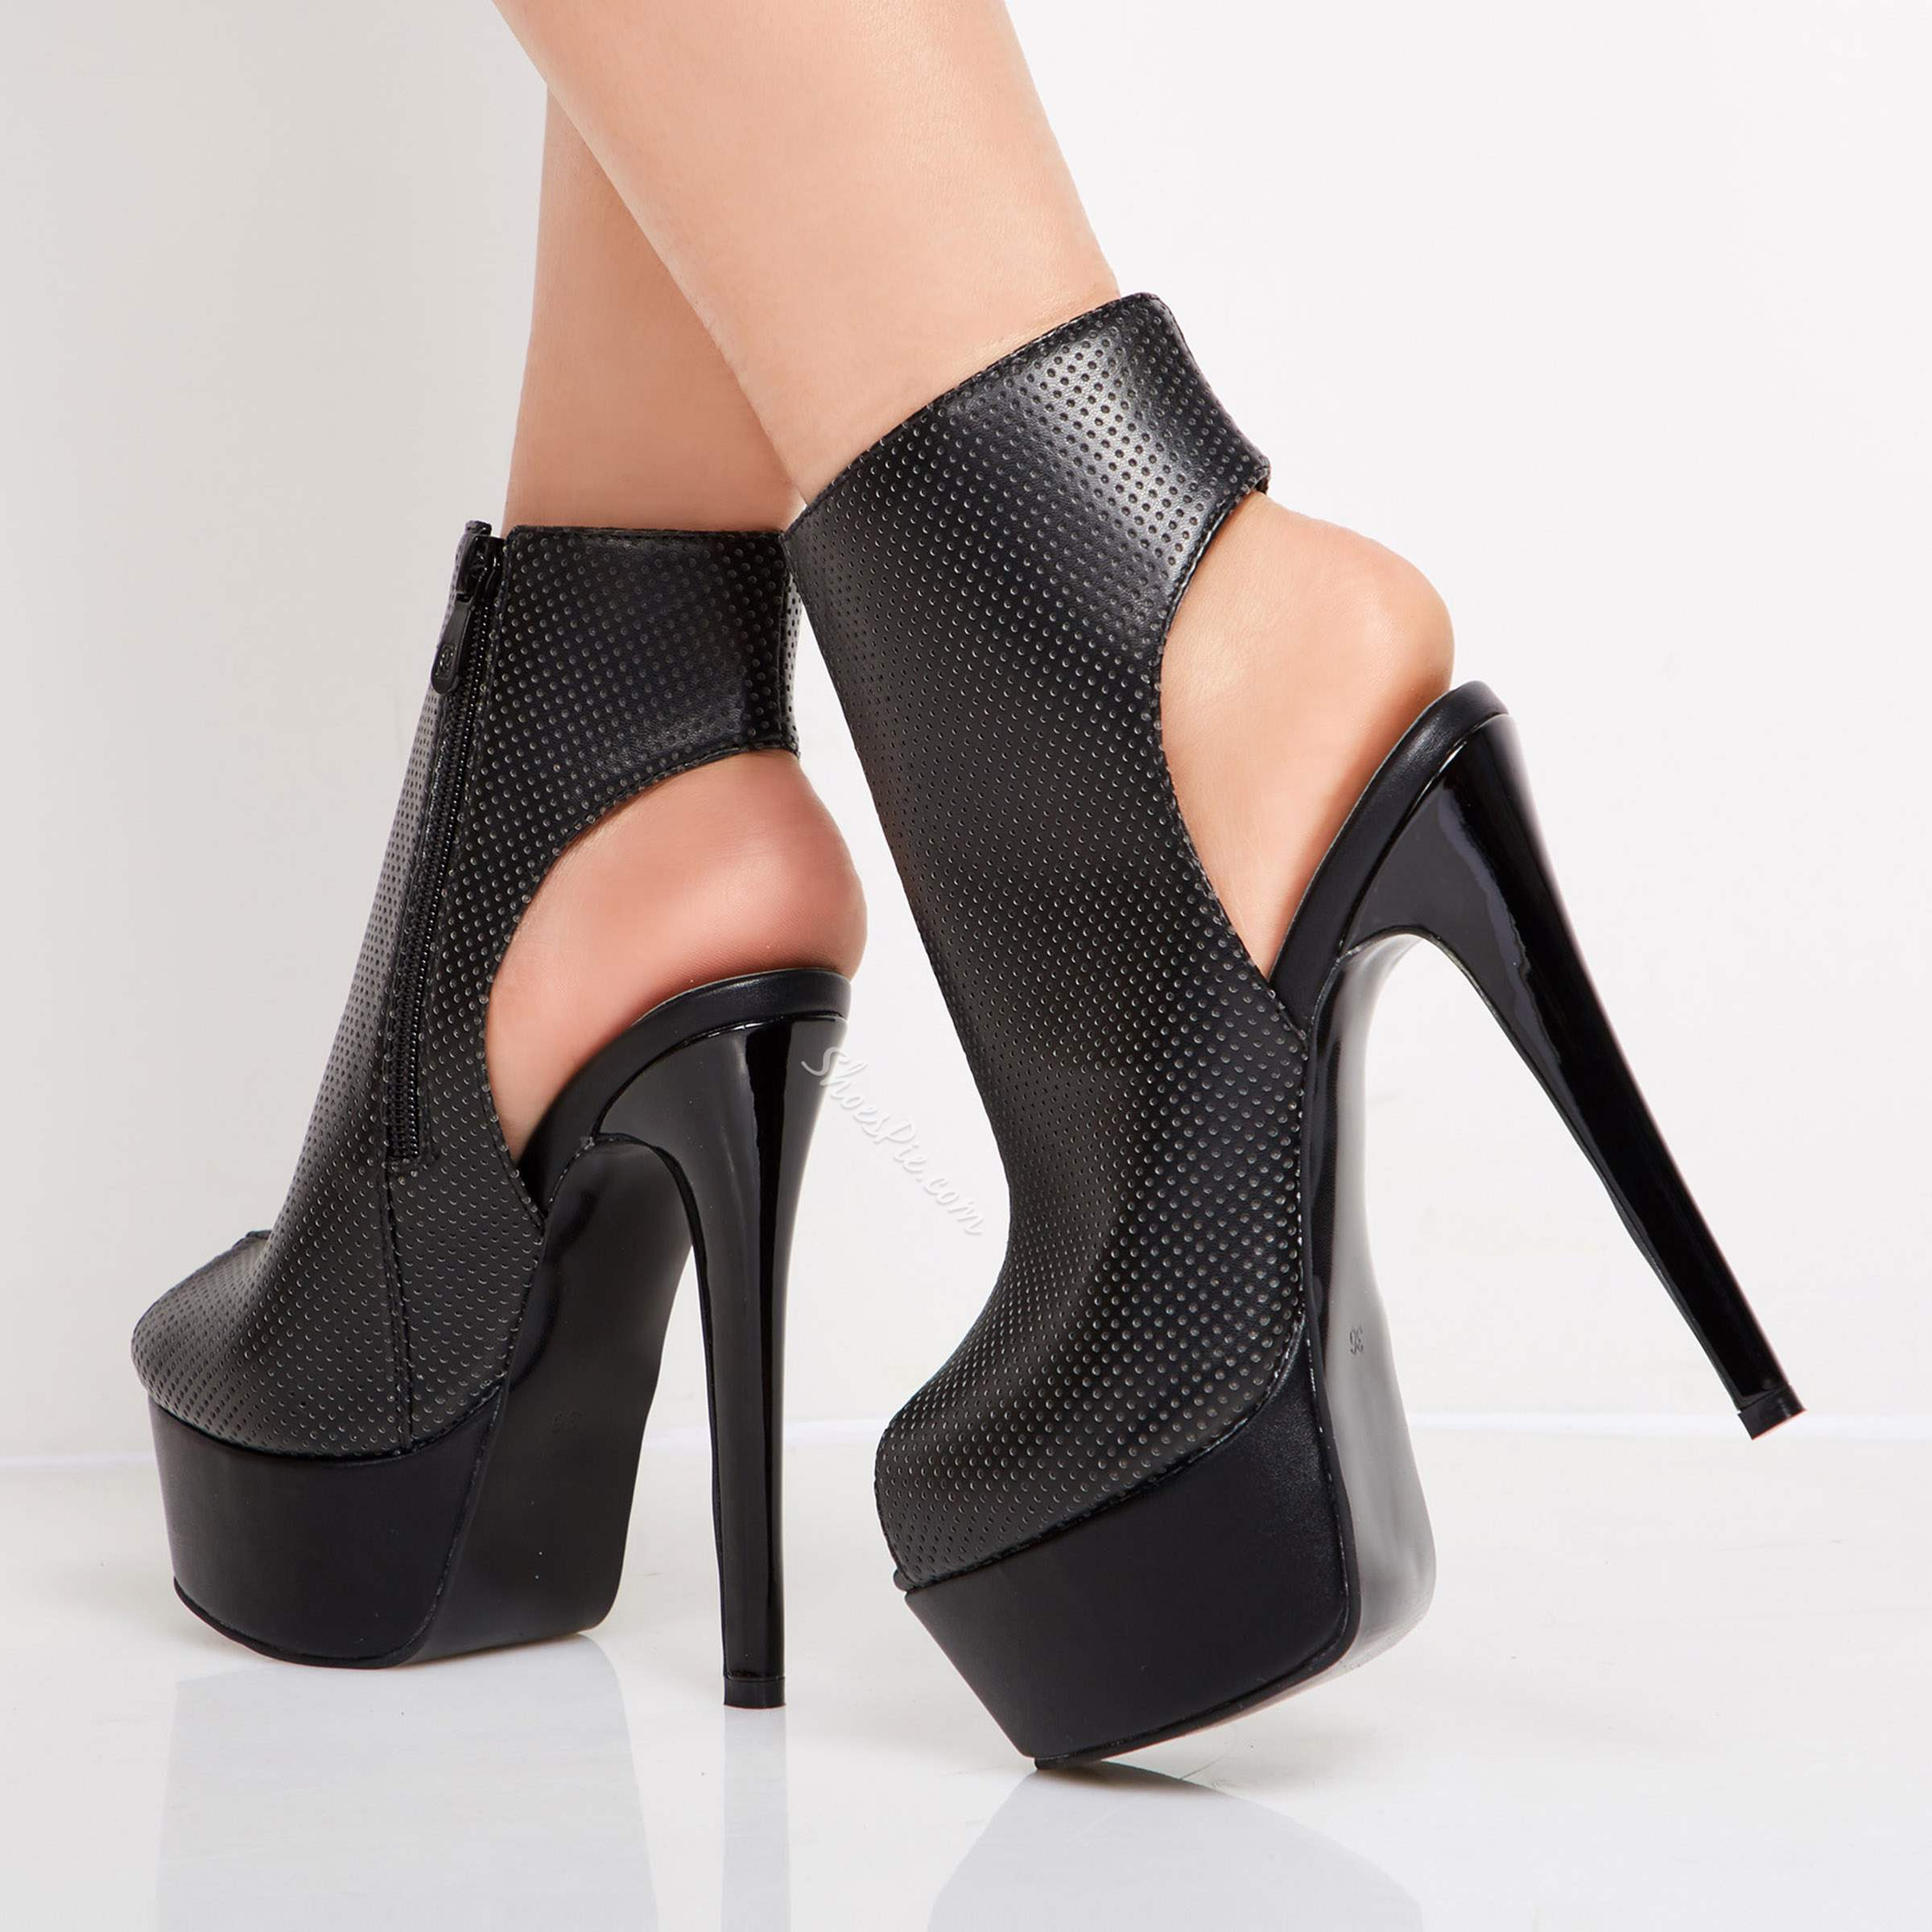 Shoespie Awesome Stiletto Heels Peep-toe Ankle Boots